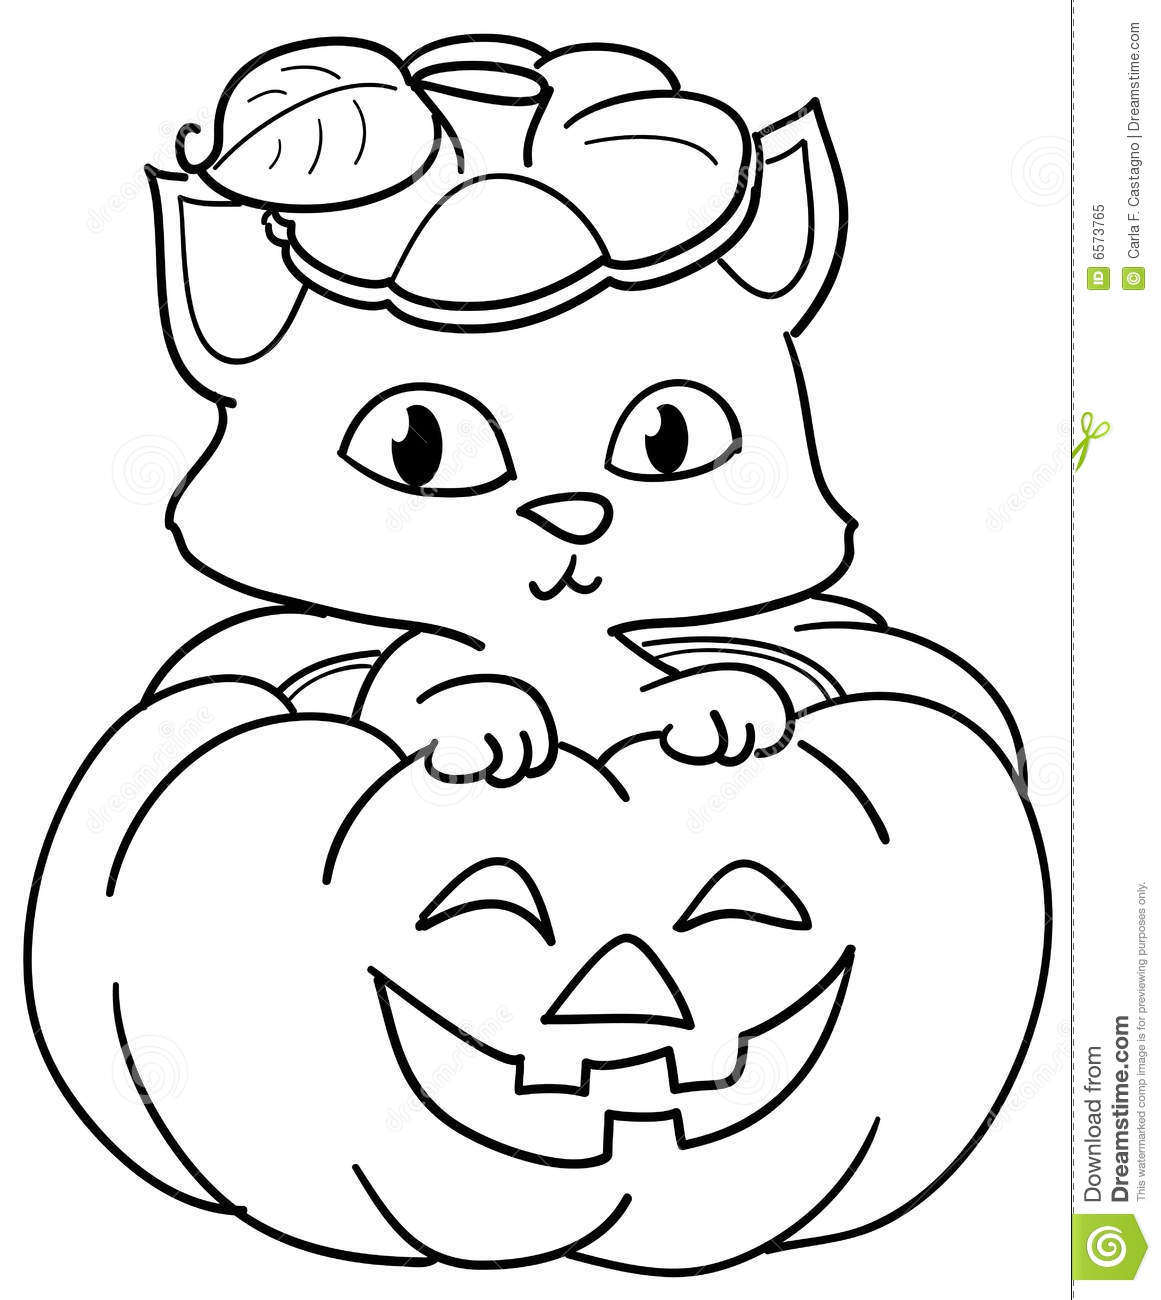 inside of a pumpkin coloring pages | Pumpkin And Cute Cat Bw Royalty Free Stock Photo - Image ...